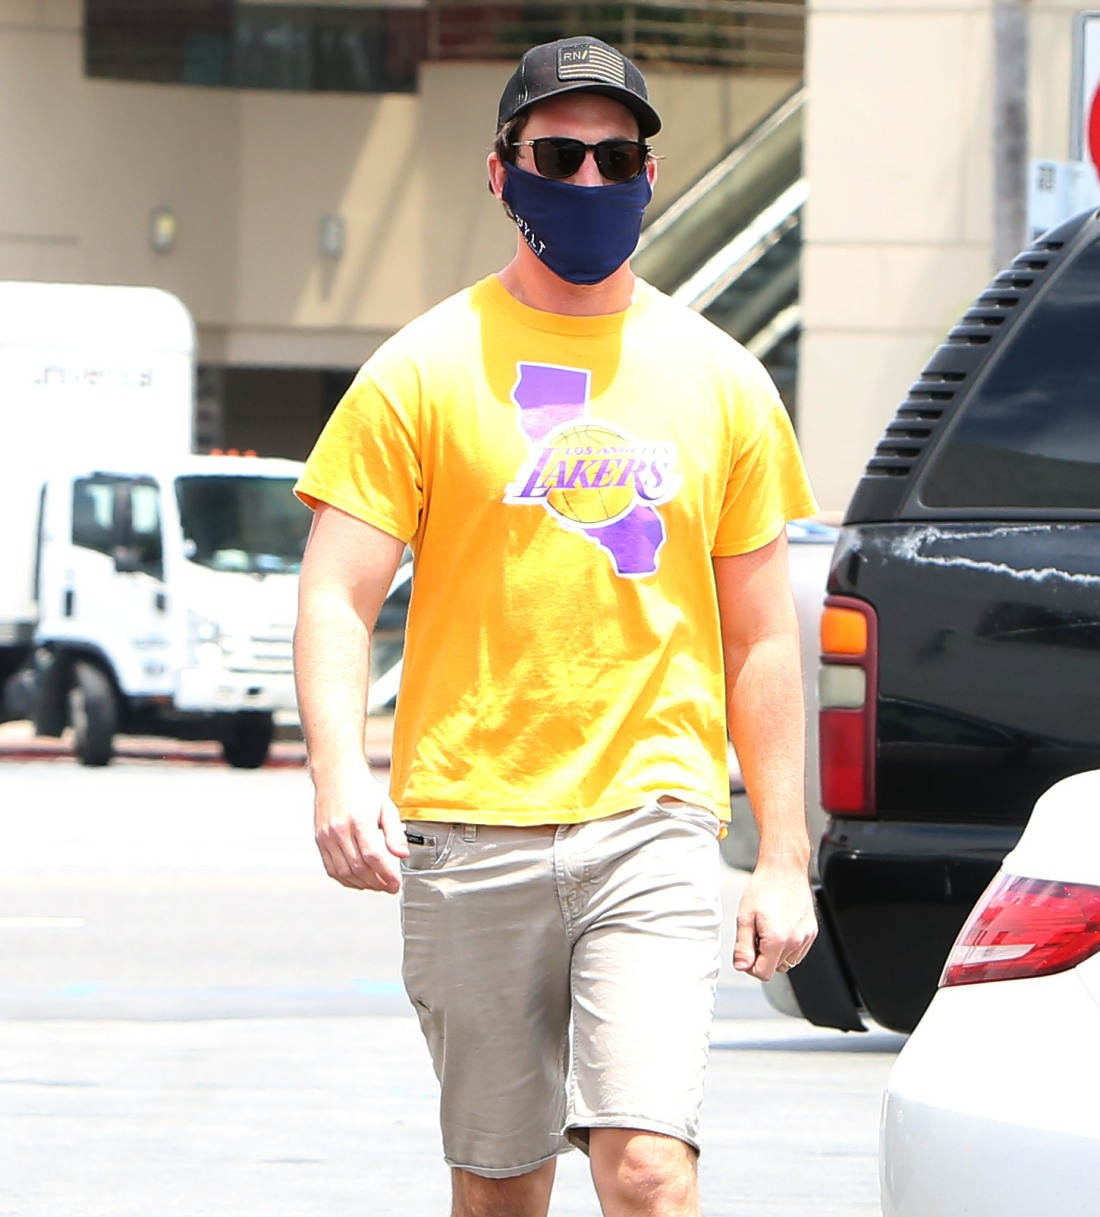 Miles Teller pops out to CVS wearing a Lakers Kobe tee